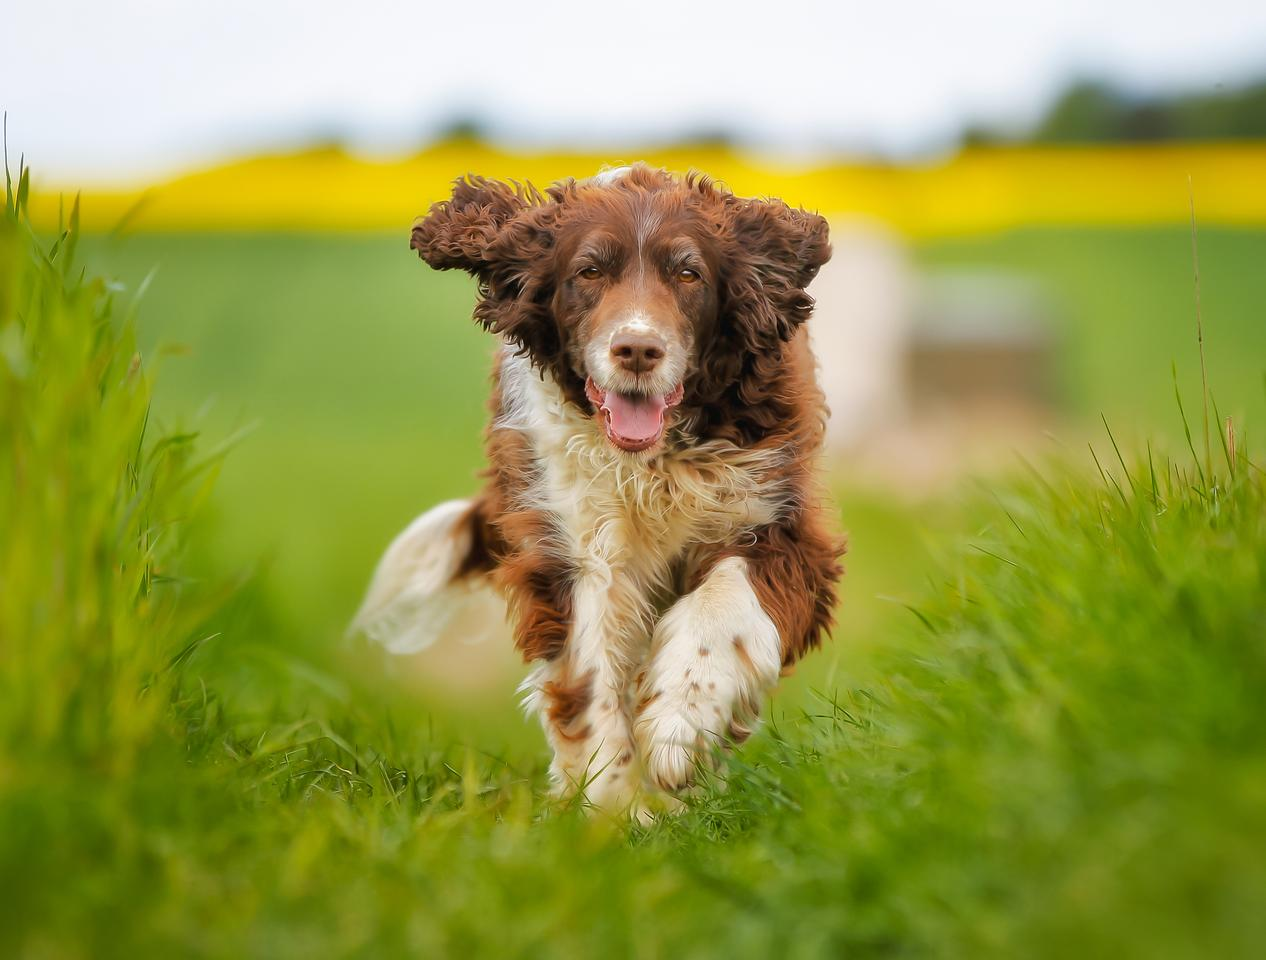 Scientists have previously trained springer spaniels to detect diseases like malaria, and hope to do the same for COVID-19